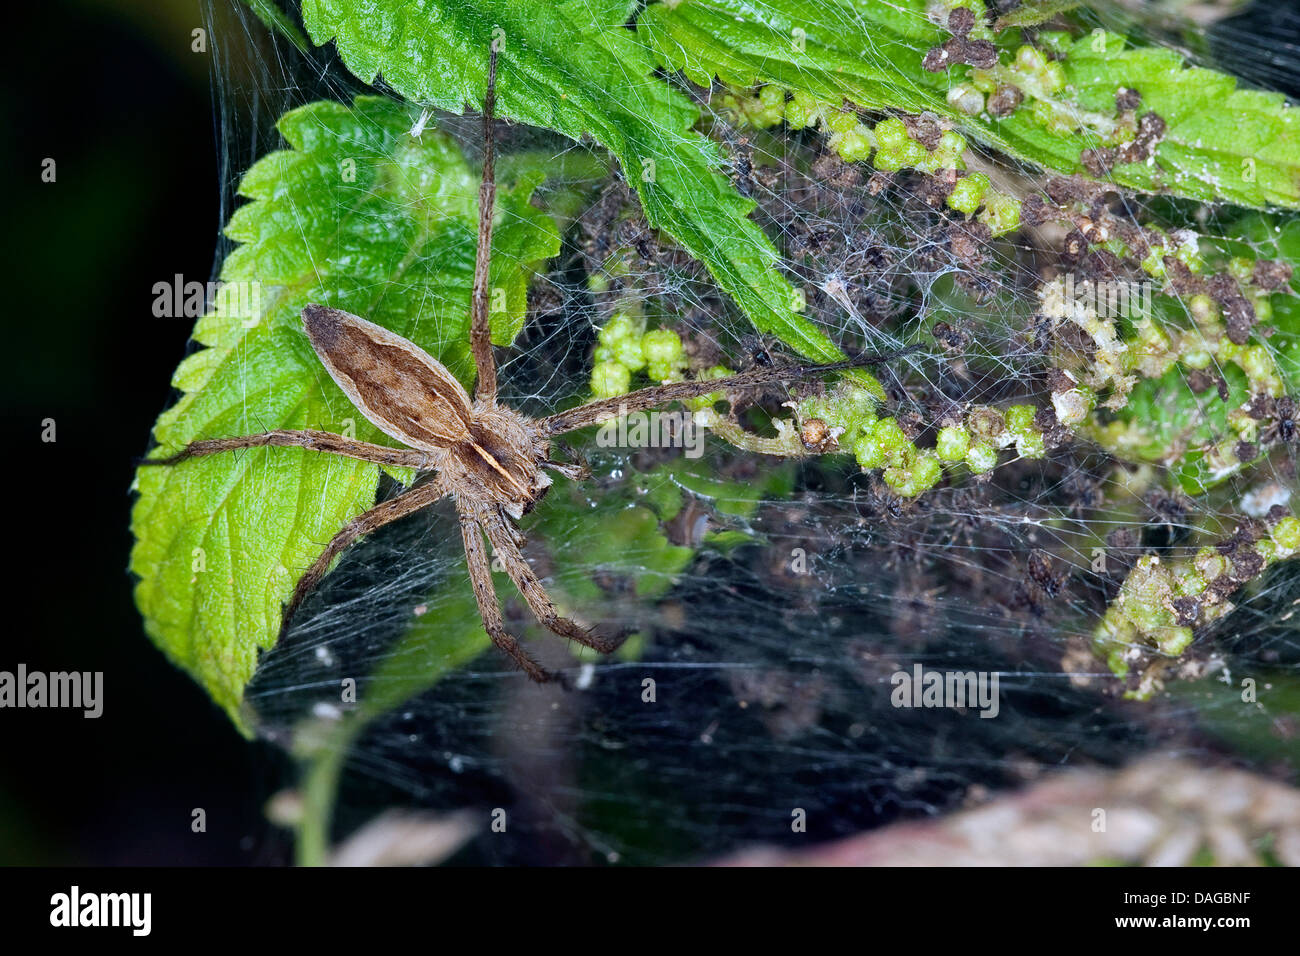 nursery web spider, fantastic fishing spider (Pisaura mirabilis), femal with young spiders in the nest, Germany - Stock Image